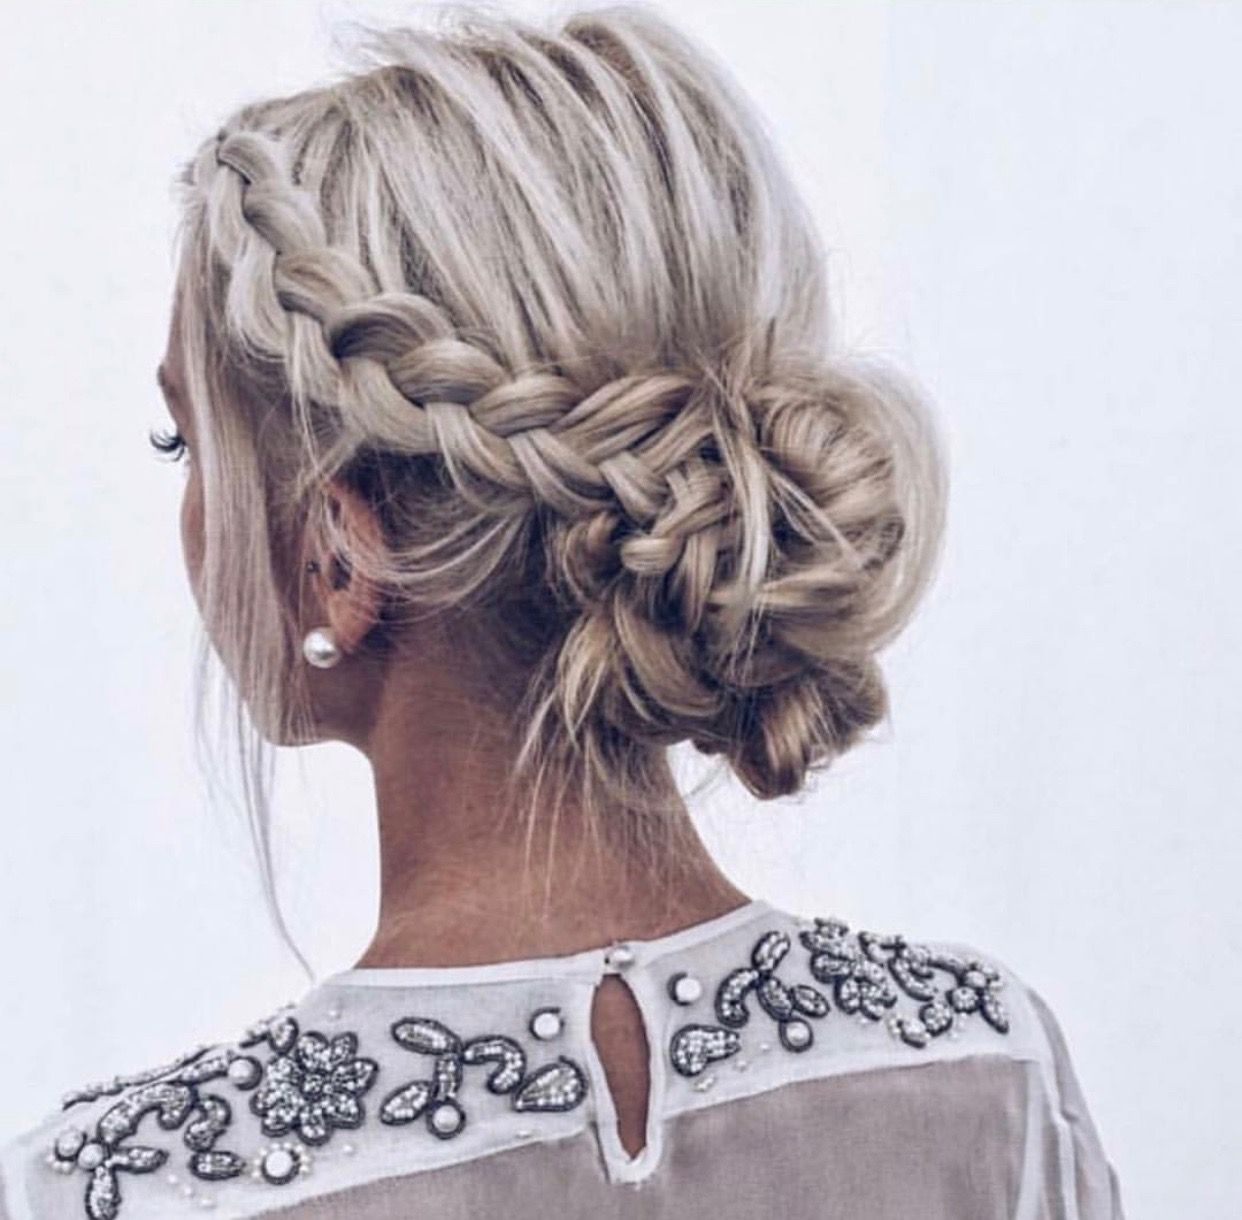 Bridal Braids: The Perfect Braided Updo: Teased, Messy Side Braid Fading